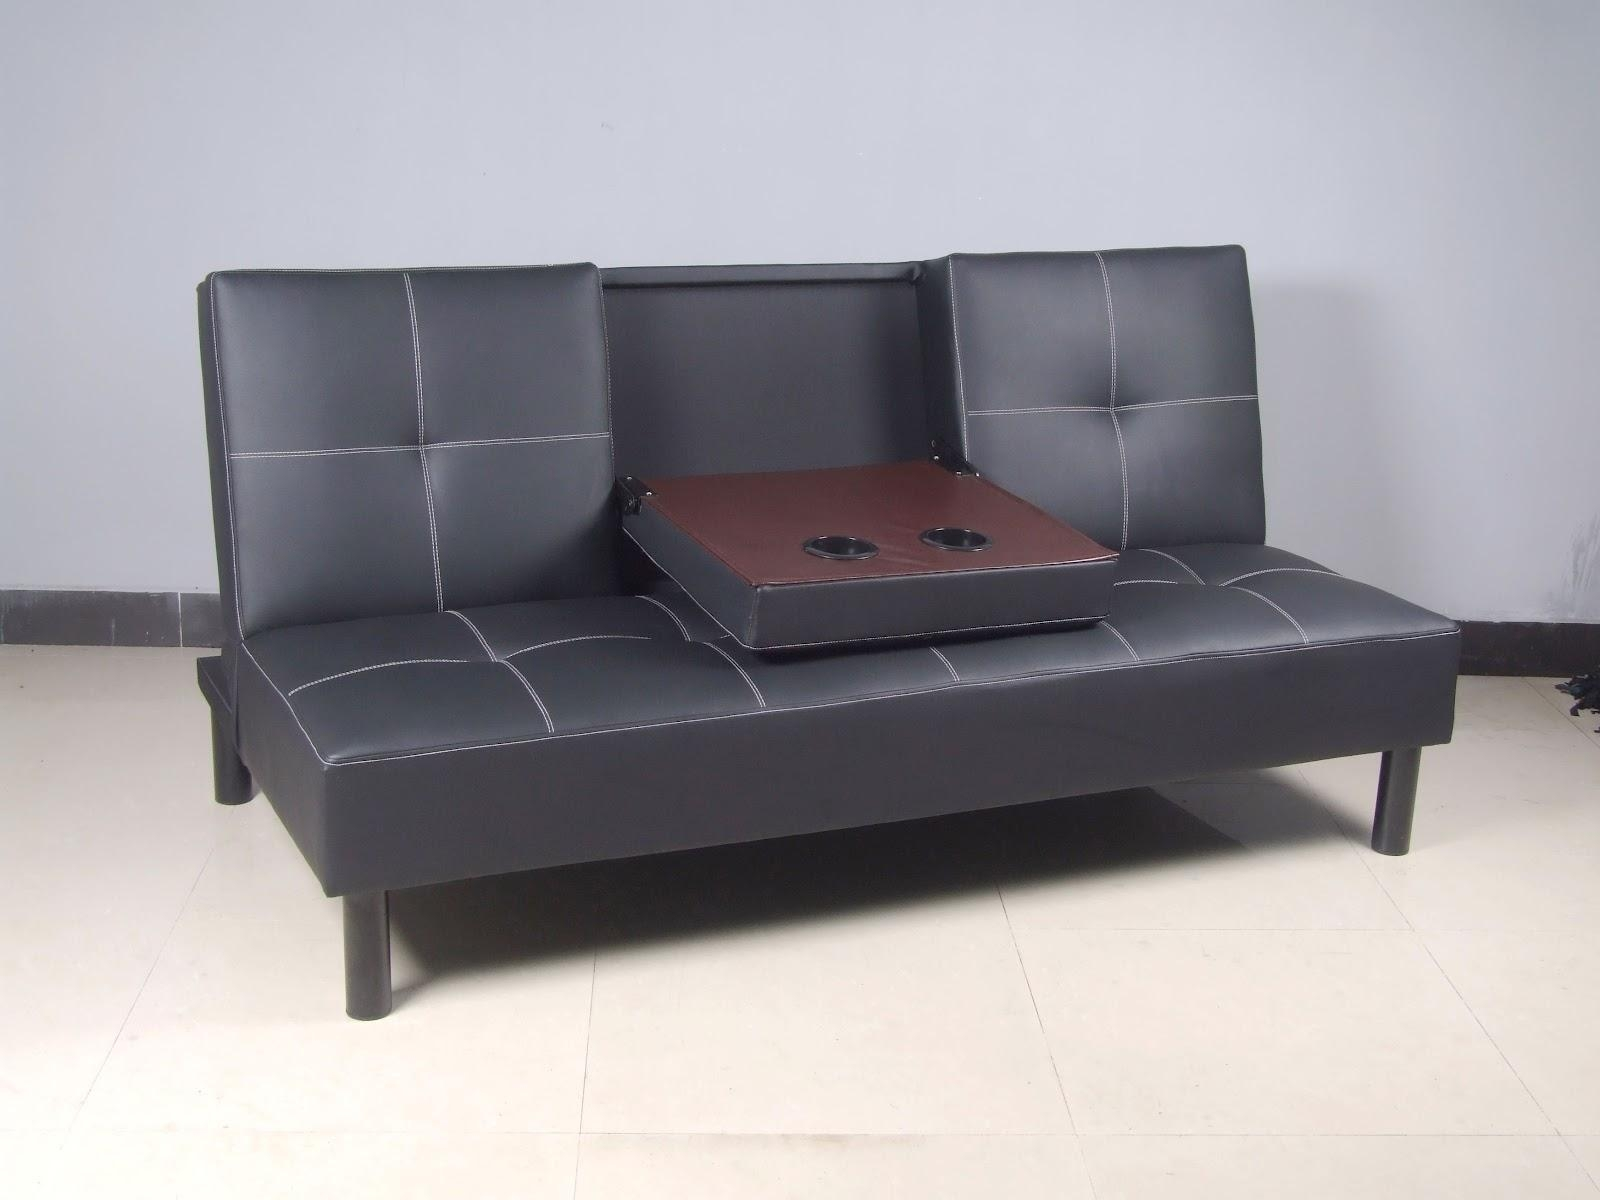 Sofas Center : Beautiful Faux Leather Sleeper Sofa Photo Design With Faux Leather Sleeper Sofas (Image 14 of 20)